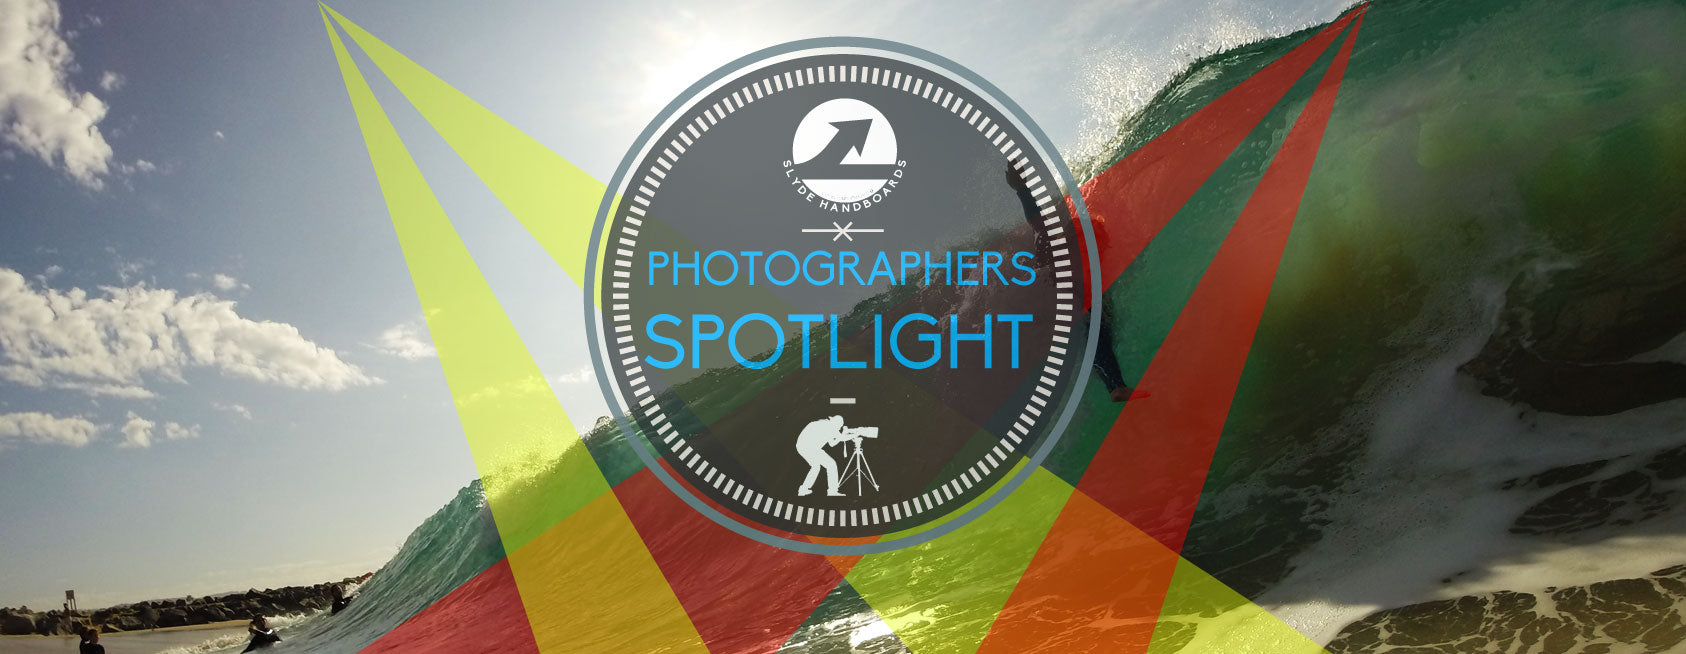 Slyde handboards photographers spotlight series